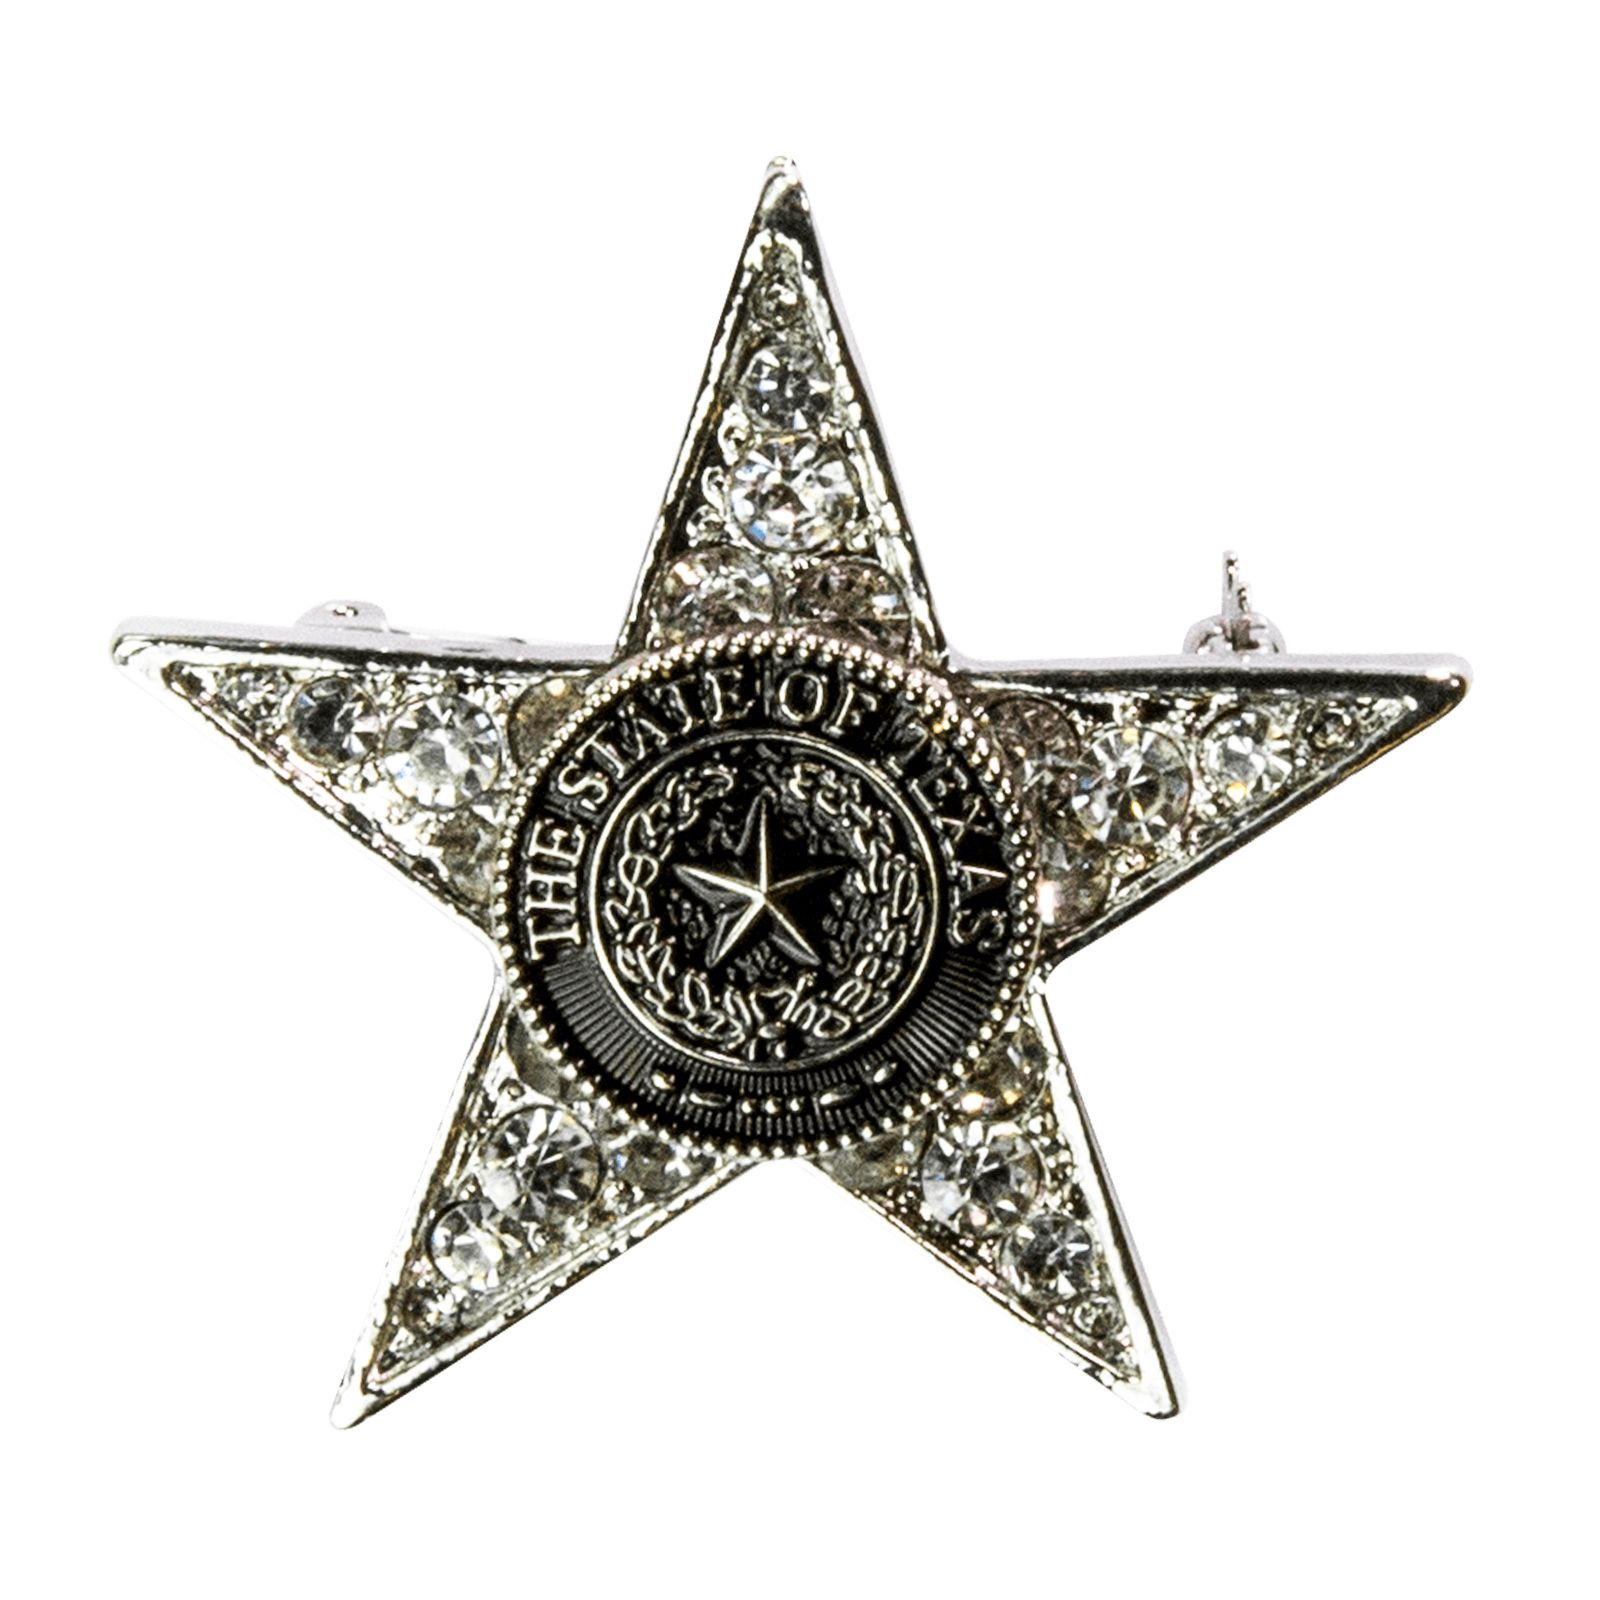 Texas State Seal Star Shaped White Stone Brooch